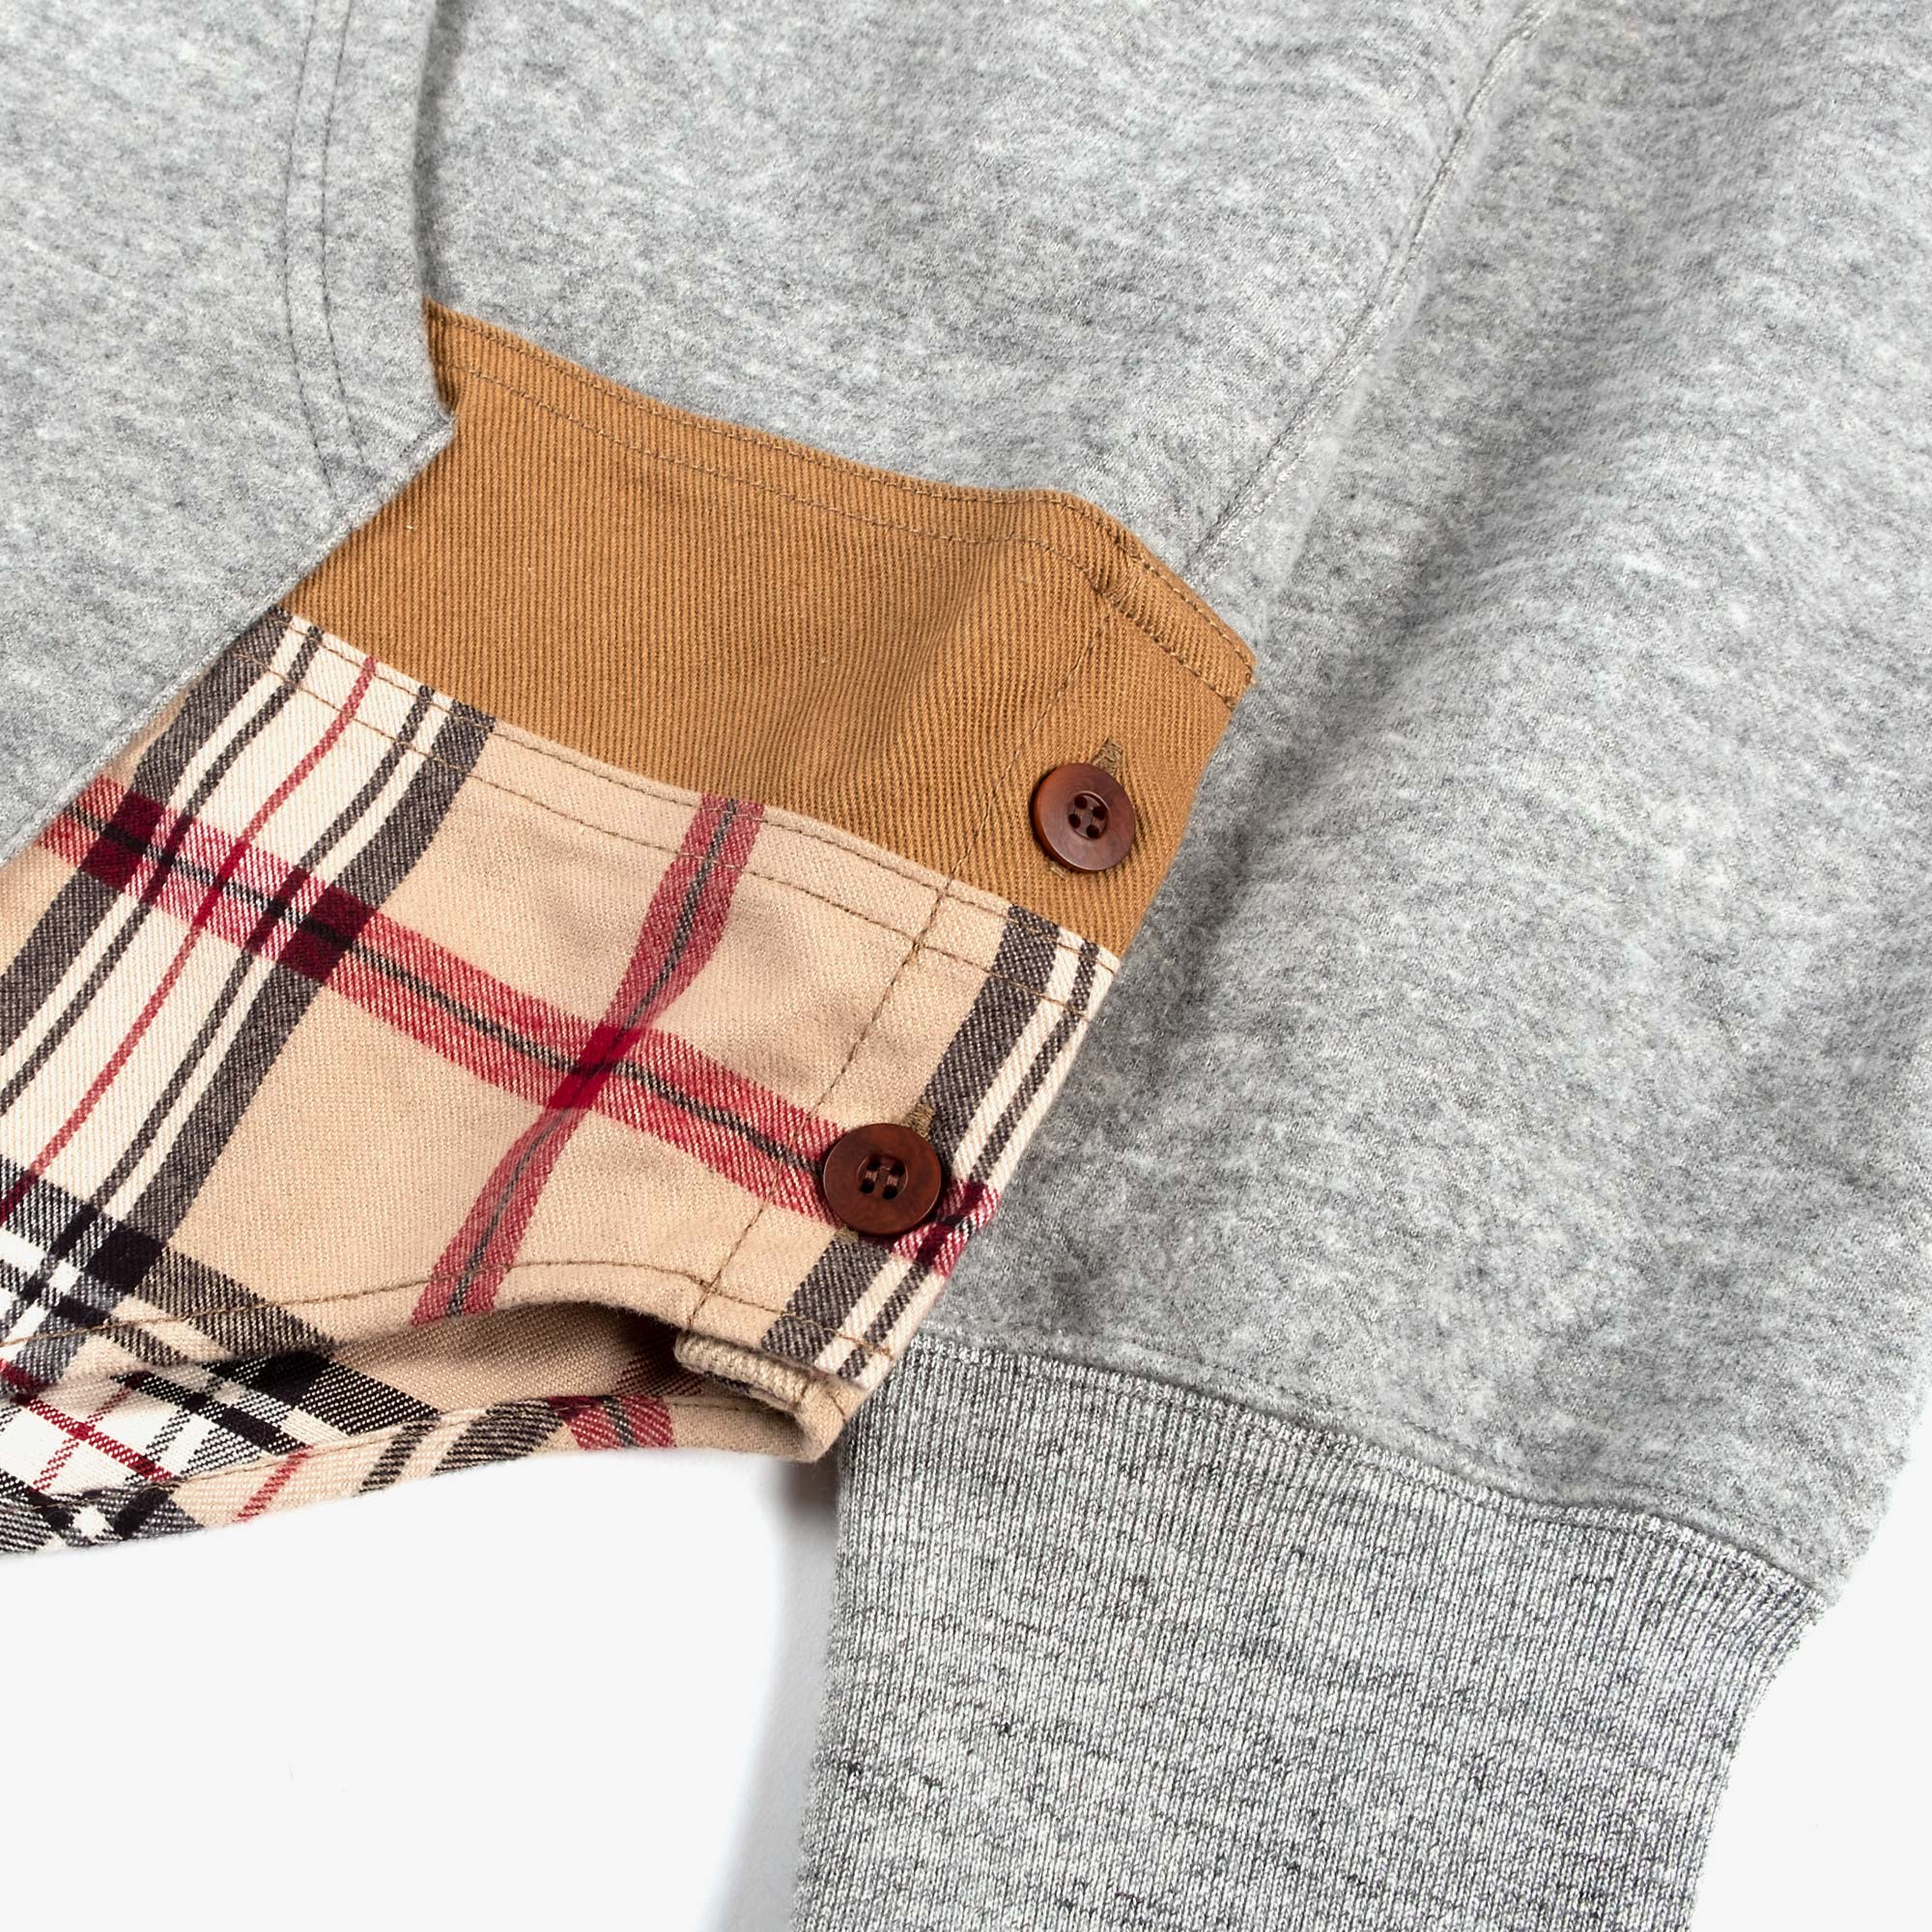 Comme des Garçons - Homme Checked Hem Pullover Hooded Sweat T004 - Grey / Multi 2